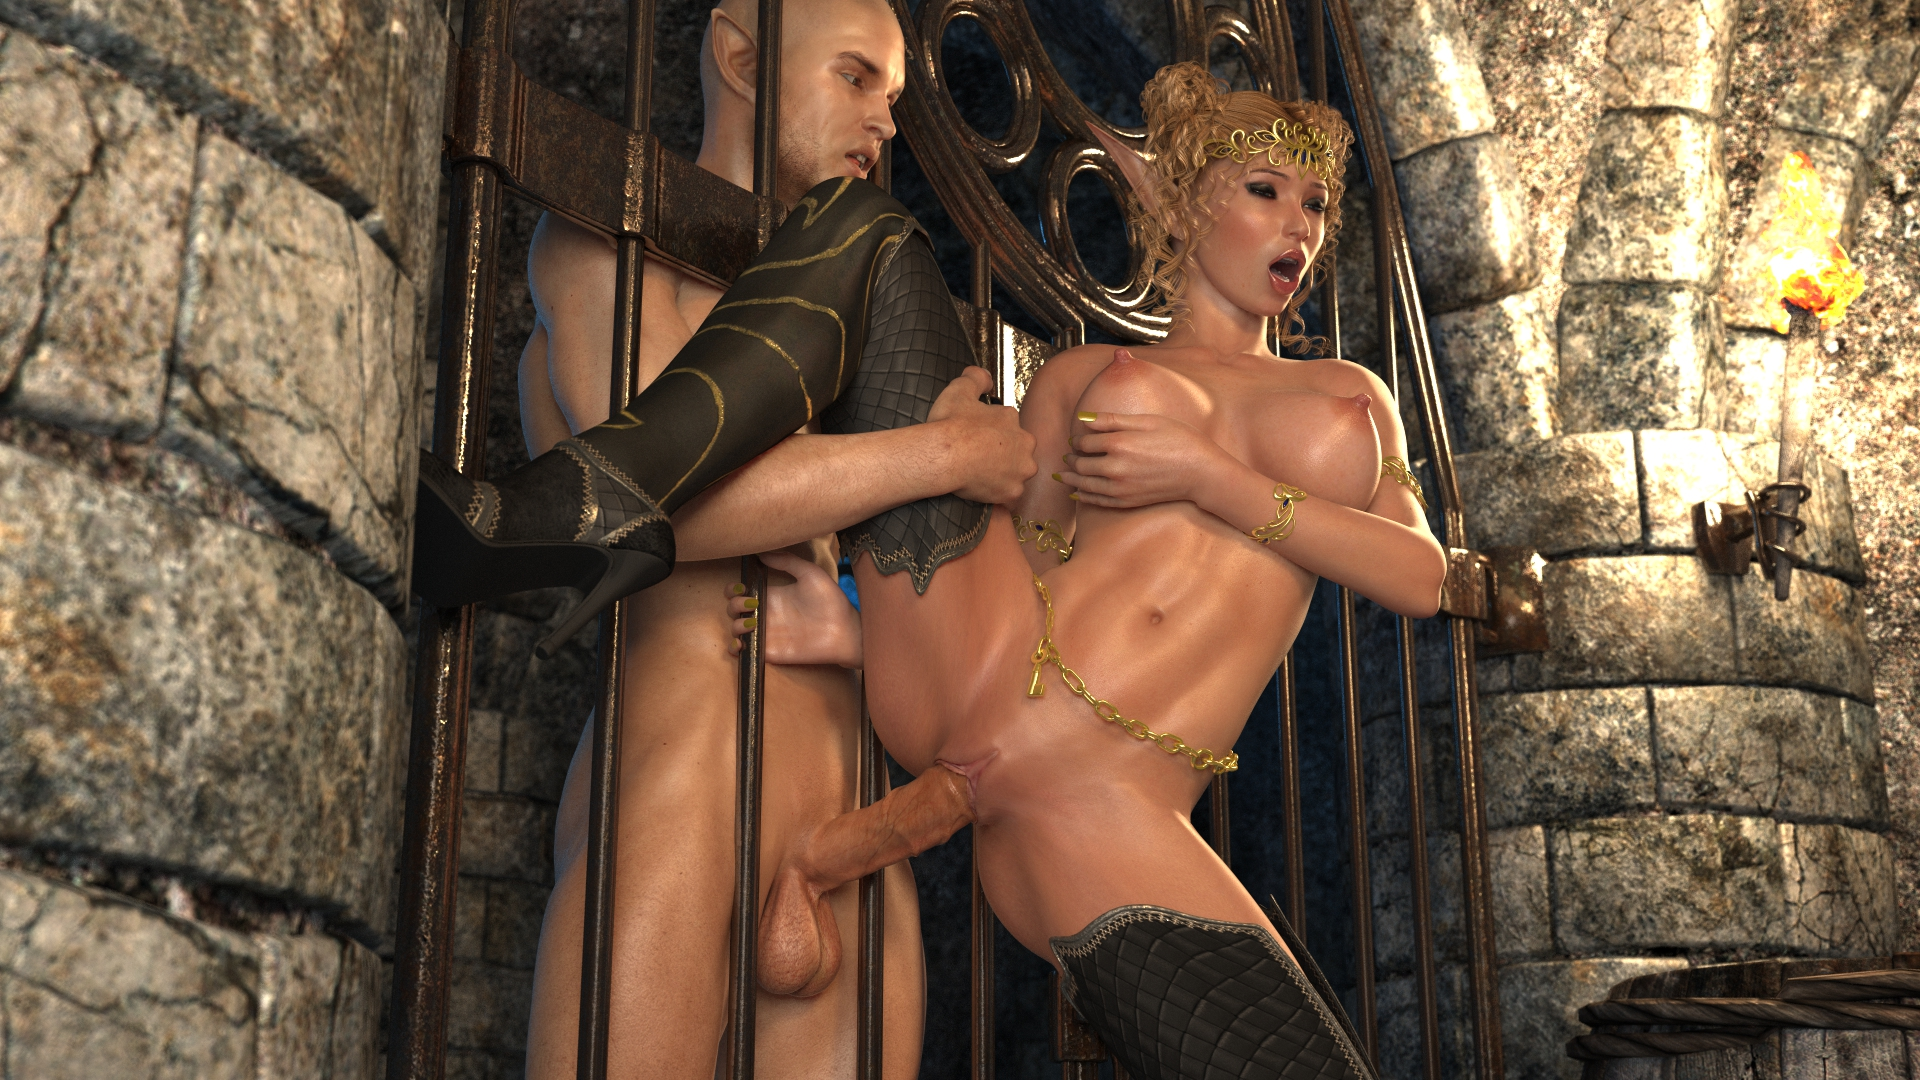 Elf xxx video hd erotic image